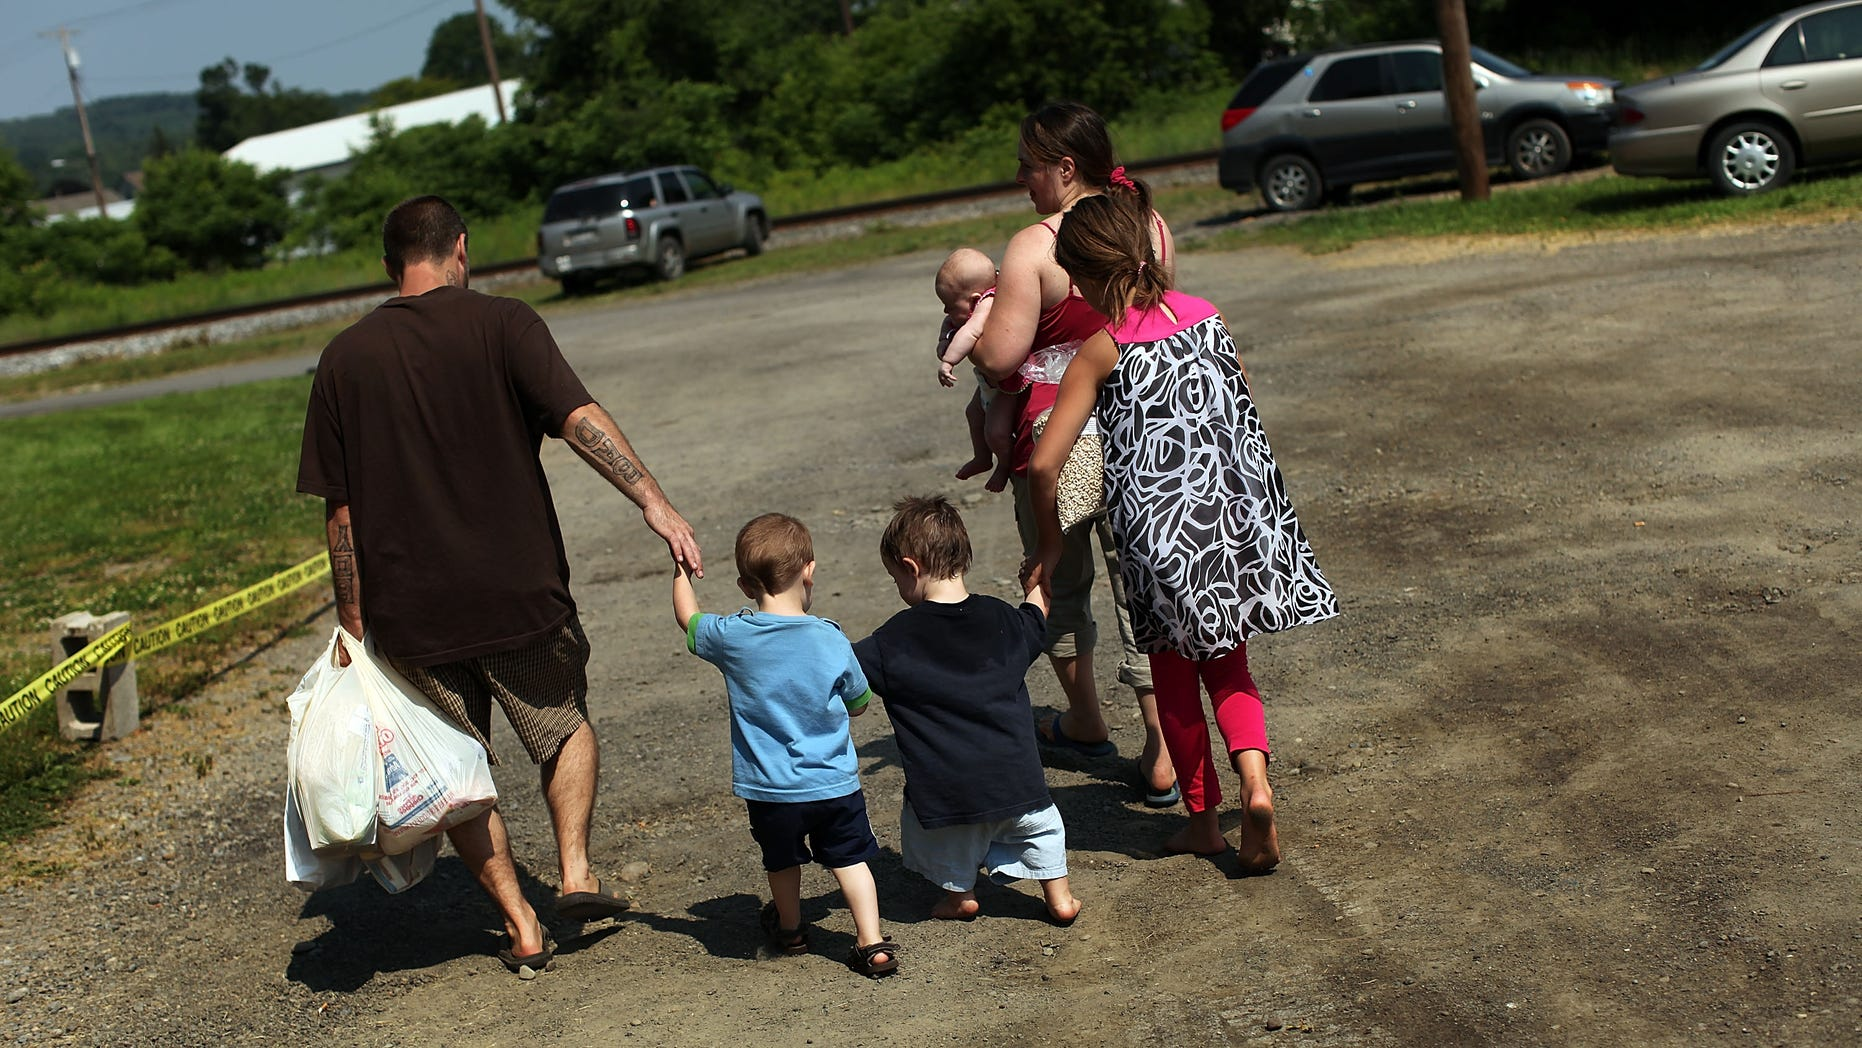 OSWEGO, NY - JUNE 20: Members of the Dolan family walk home with bags of food after a food distribution by the Food Bank of the Southern Tier Mobile Food Pantry on June 20, 2012 in Oswego, New York. The mobile food pantry program was introduced in 2007 in the Southern Tier of New York and covers nearly 4,000 predominately rural miles. The converted beverage truck delivers fresh produce, dairy products and other grocery items to individuals and families in need. The pantry typically distributes for a period of two hours and provides 100 to 160 families with food. According to the 2010 Census, 15.72% the population serviced by the mobile pantry live at or below the federal poverty level. According to statistics presented at a recent U.S. Senate committee hearing, almost one in seven Americans are living below the poverty line with a significant number of them being children.  (Photo by Spencer Platt/Getty Images)